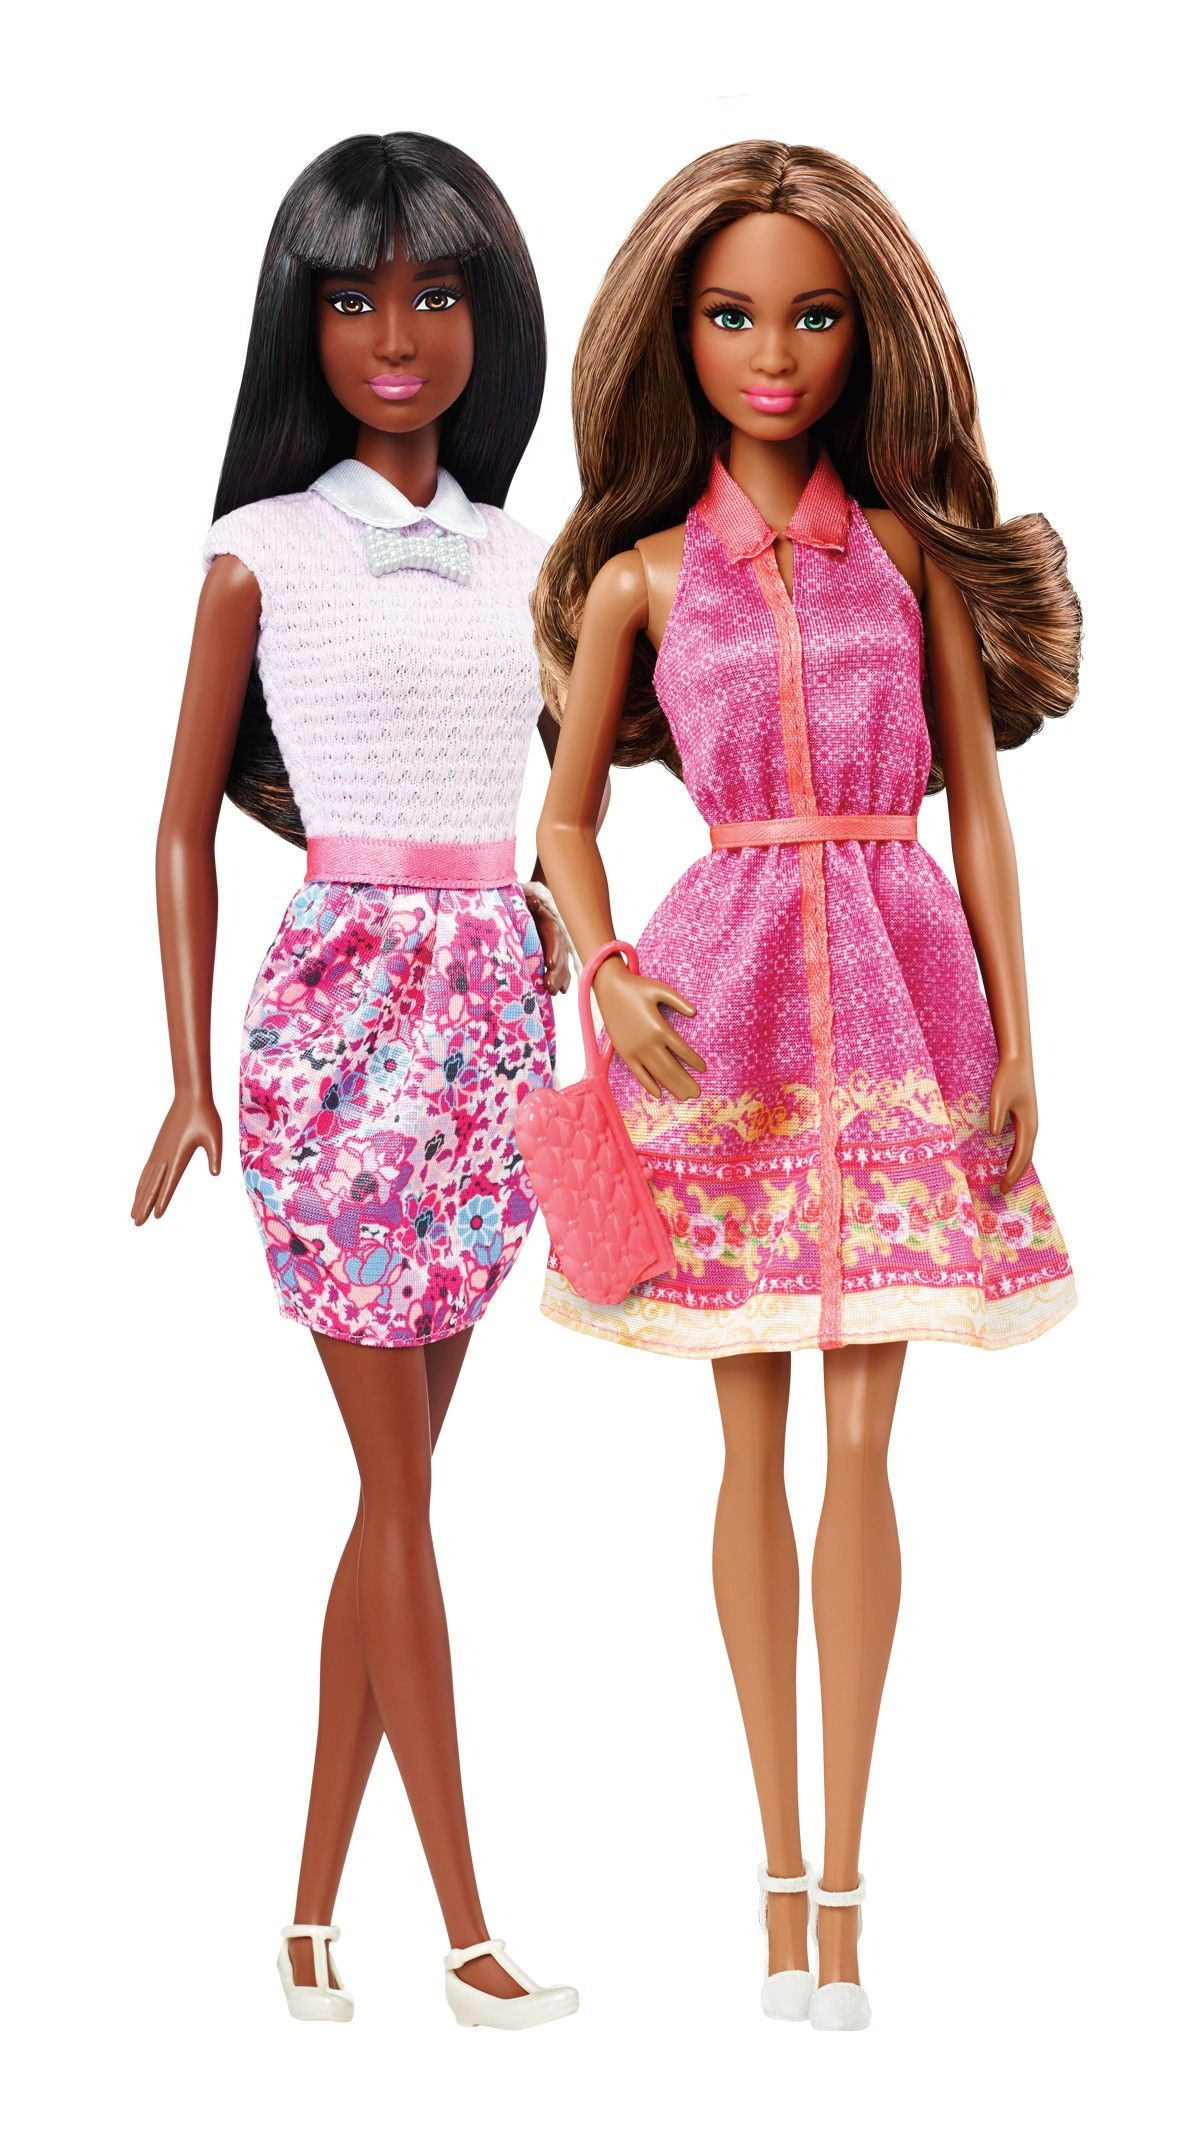 Find Your Style With The Barbie Fashionistas Doll Line Ad Little Fashionistas Pinterest